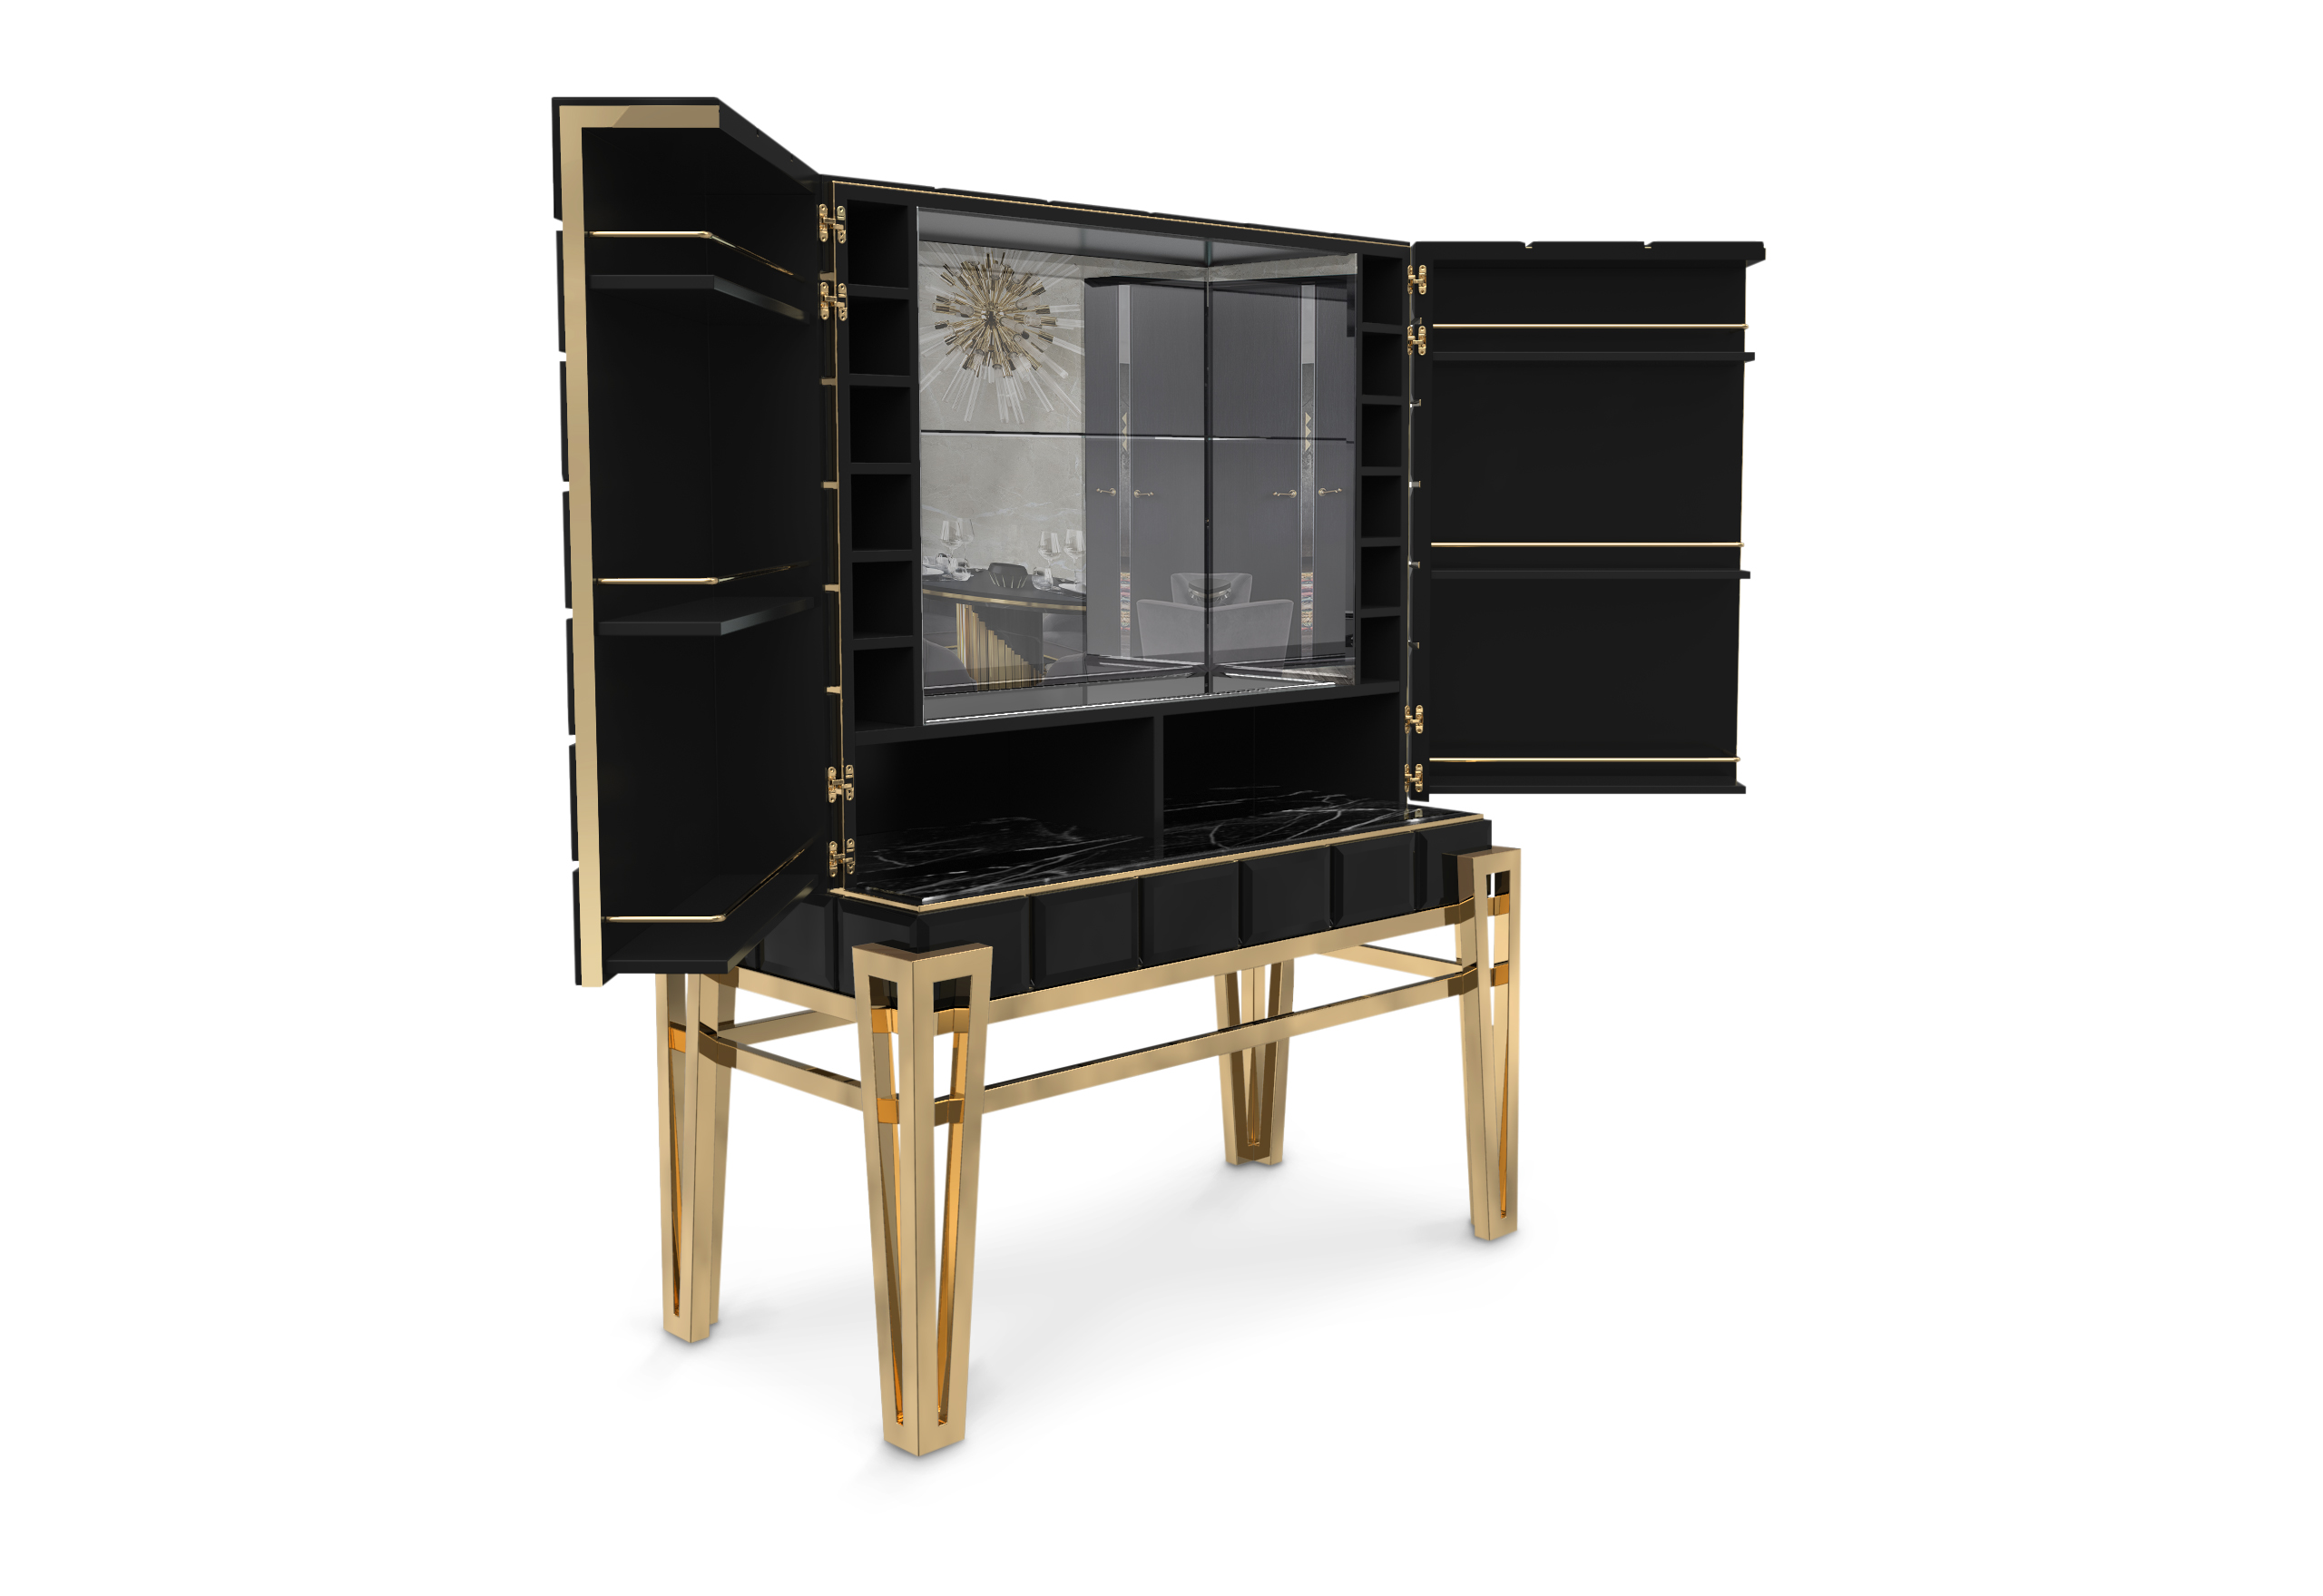 Luxury Design: Fall in Love with The Nubian Cabinet luxury design Luxury Design: Fall in Love with The Nubian Bar Cabinet NUBIAN Bar Cabinet 45